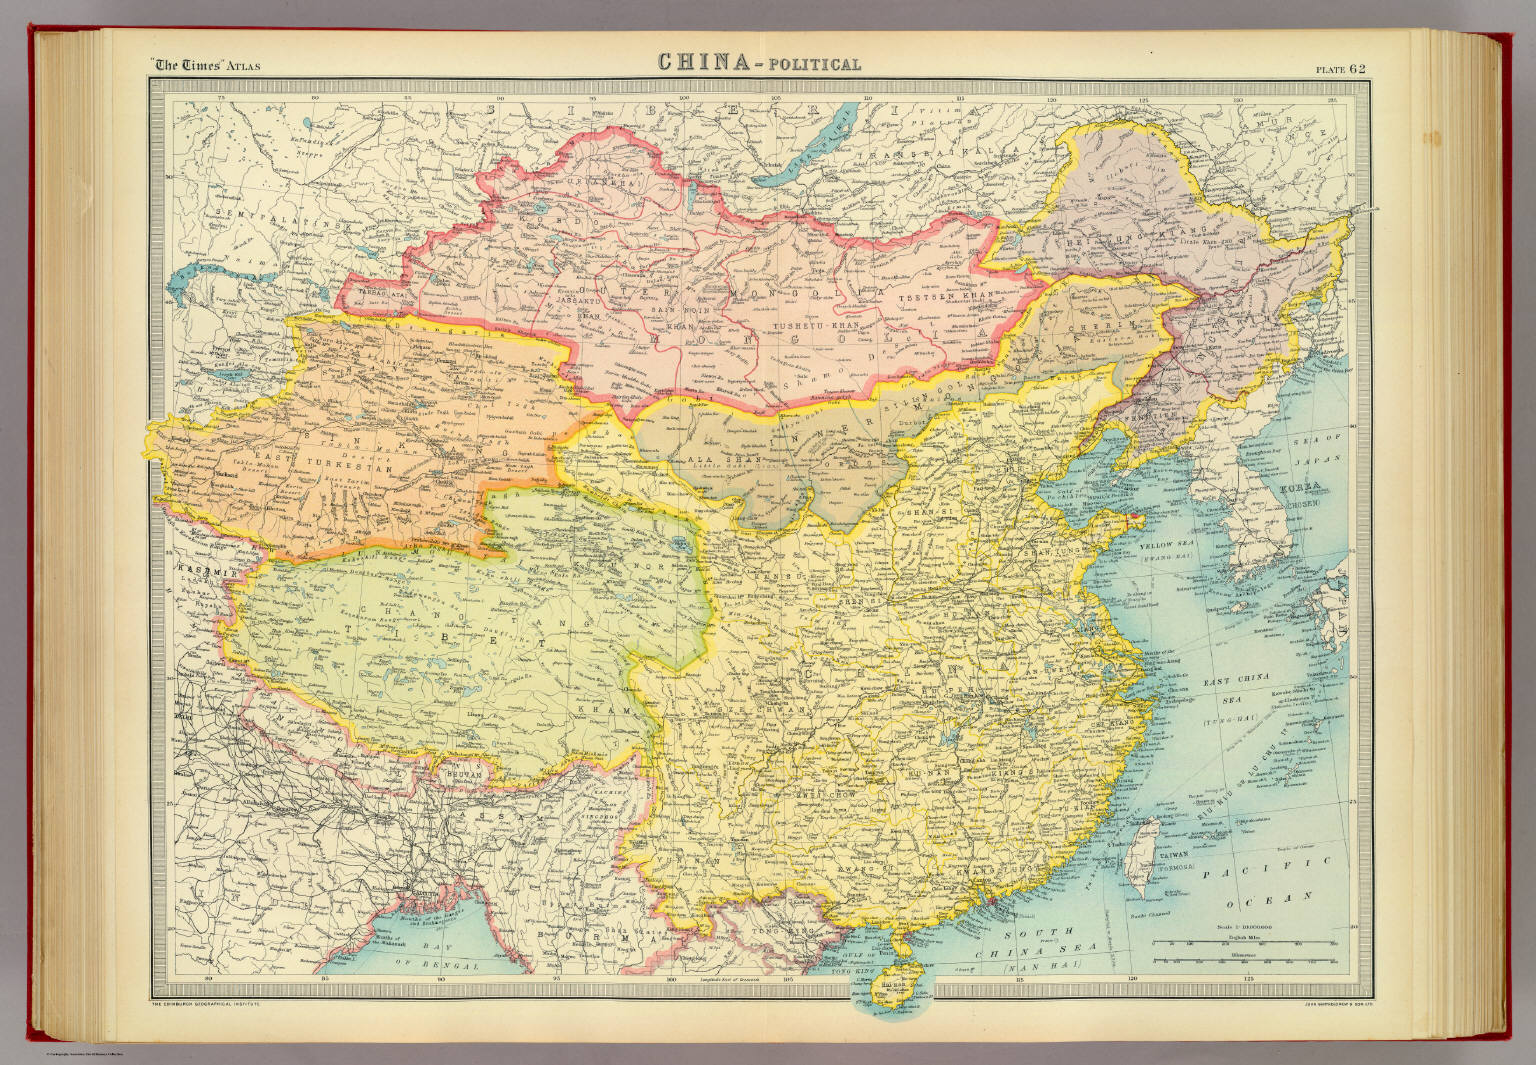 China - political. - David Rumsey Historical Map Collection